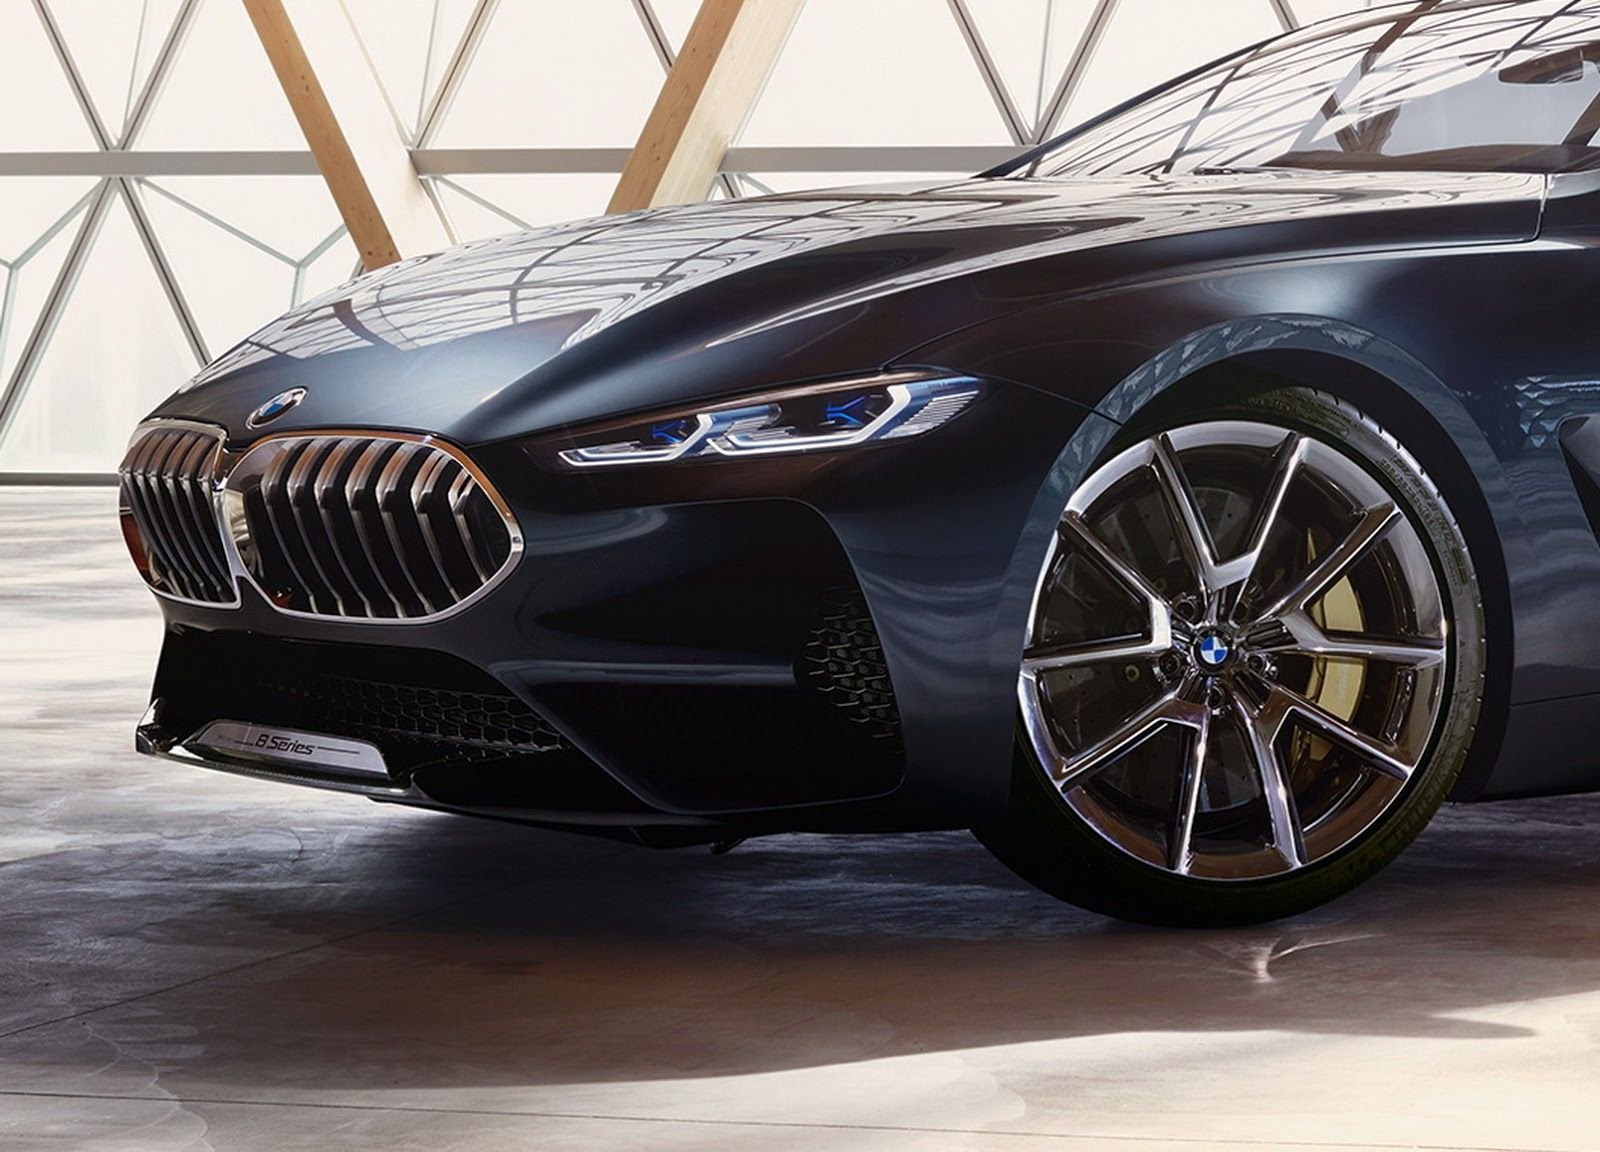 Bmw 8 series concept turned into shooting brake in new rendering http www bmwblog com 2017 05 29 bmw 8 series concept turned shooting brake new